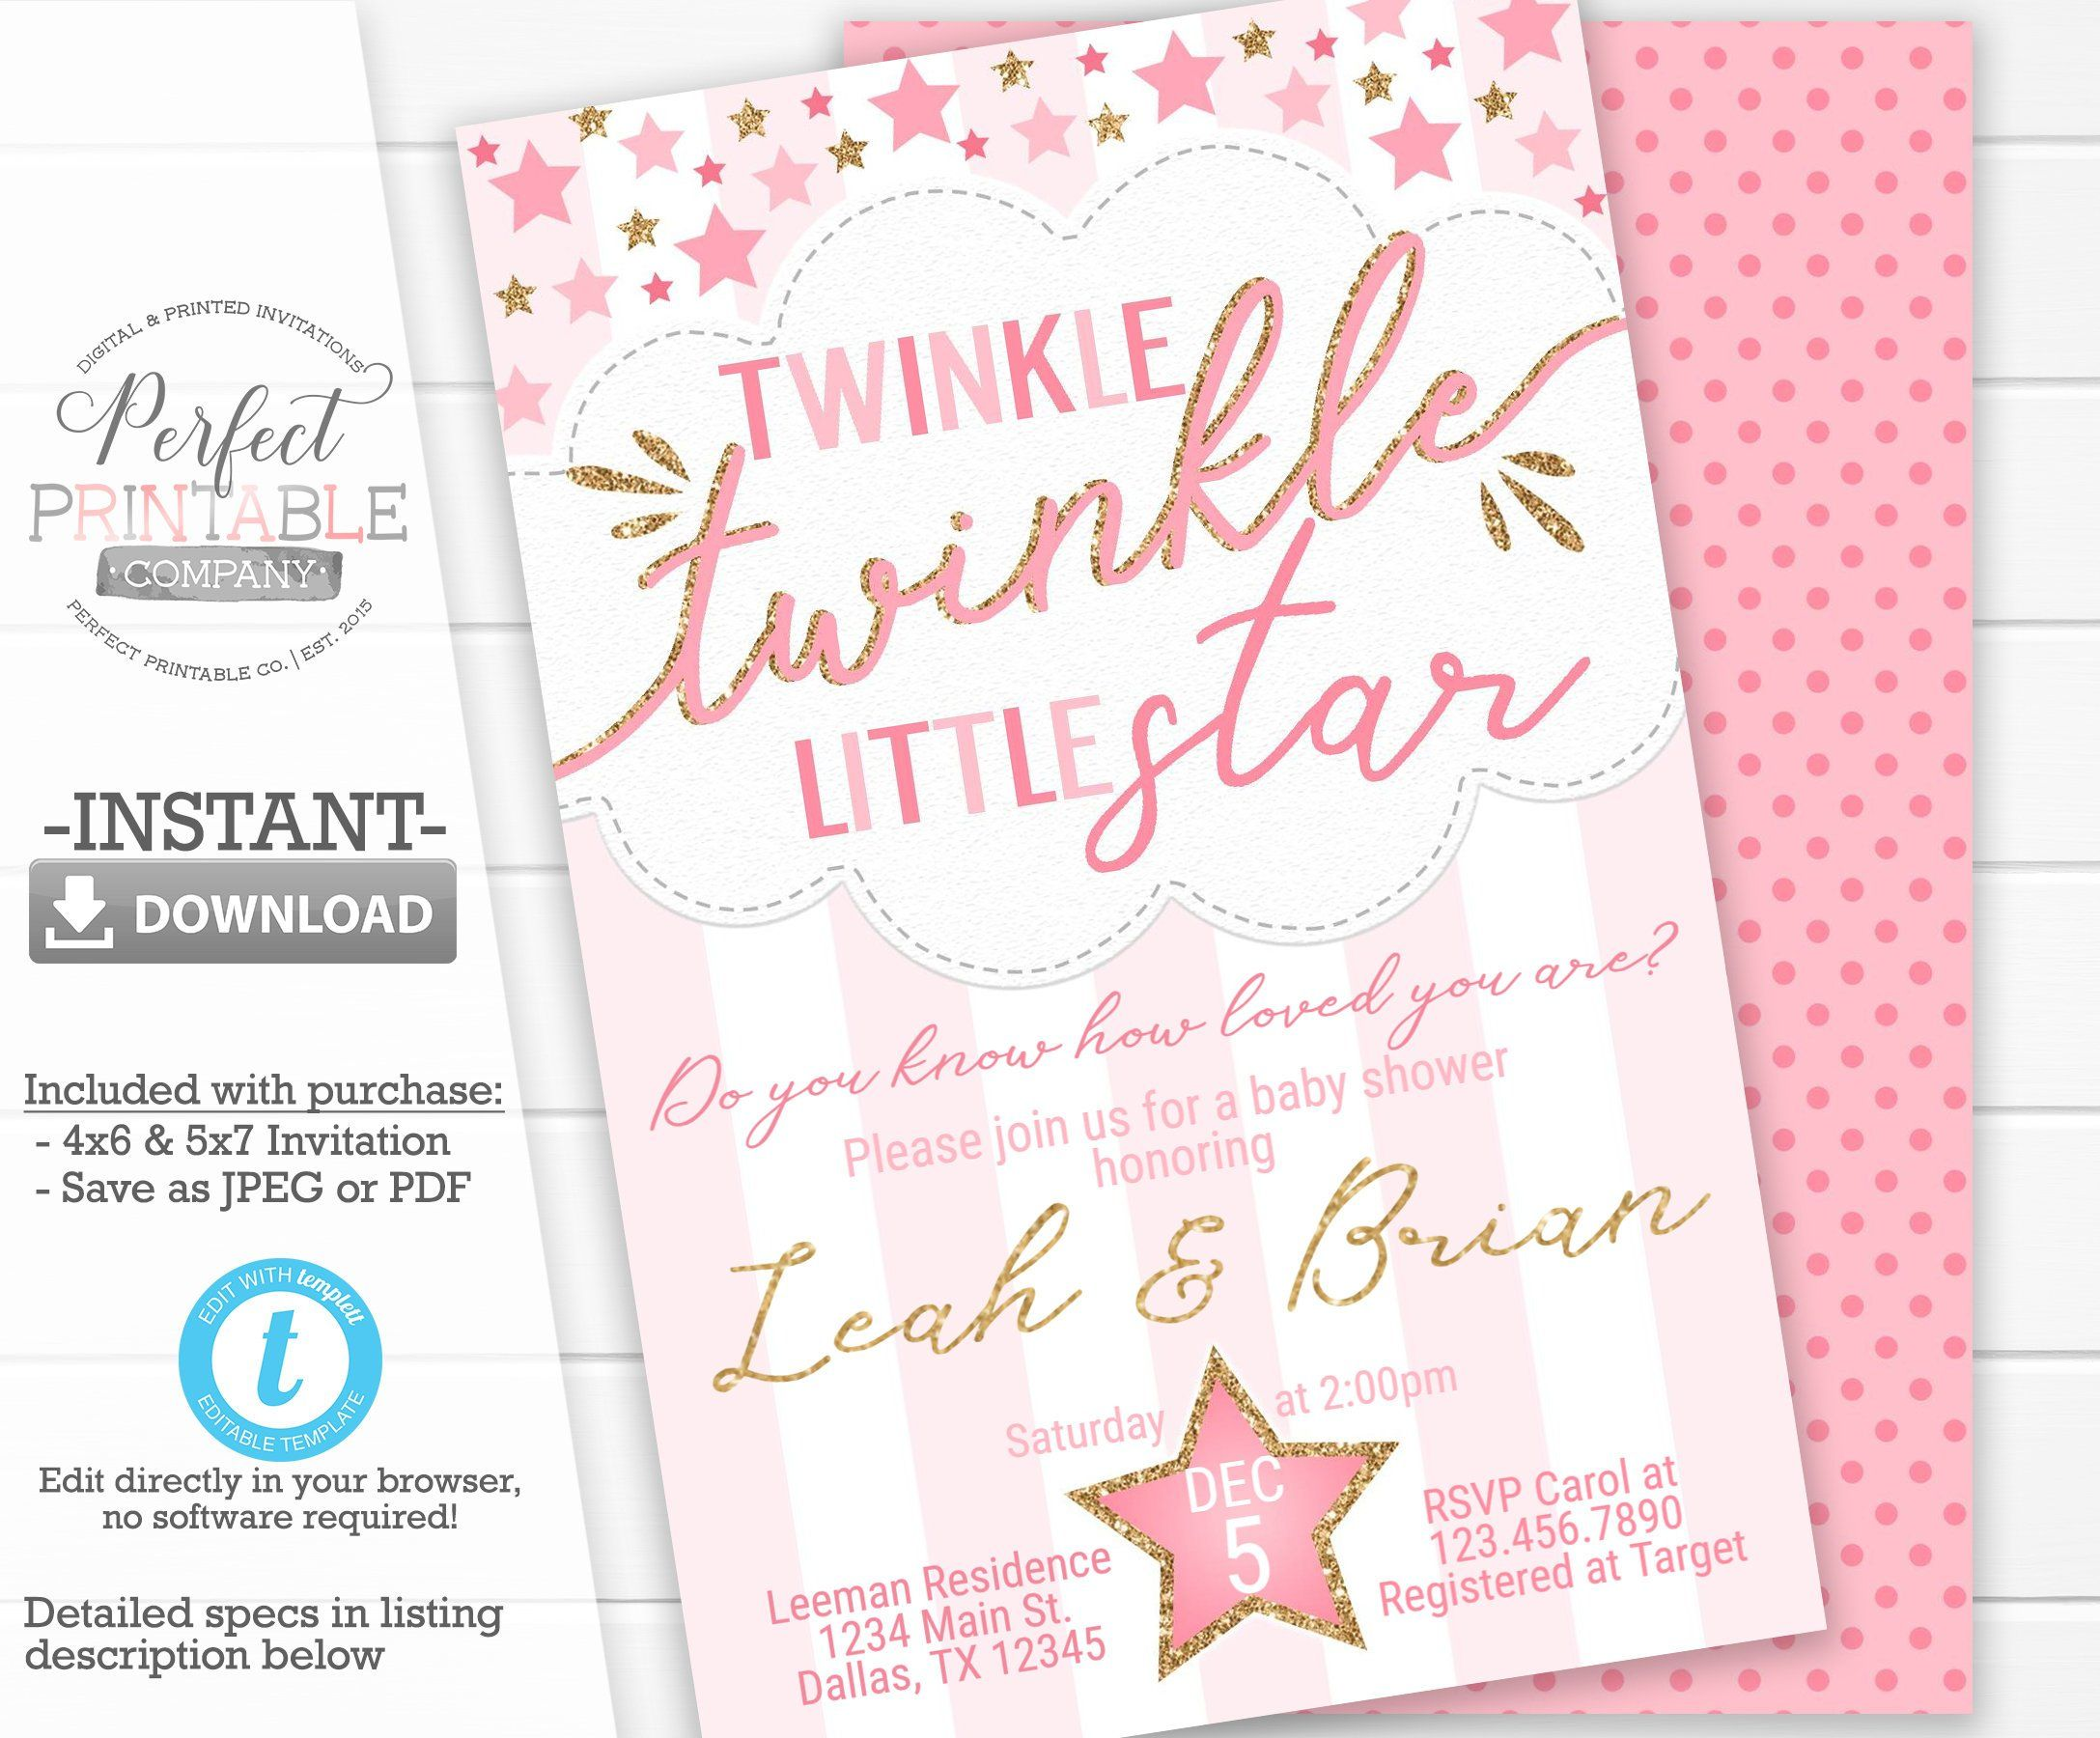 Twinkle Twinkle Little Star Baby Shower Invitation, Invite, Pink and